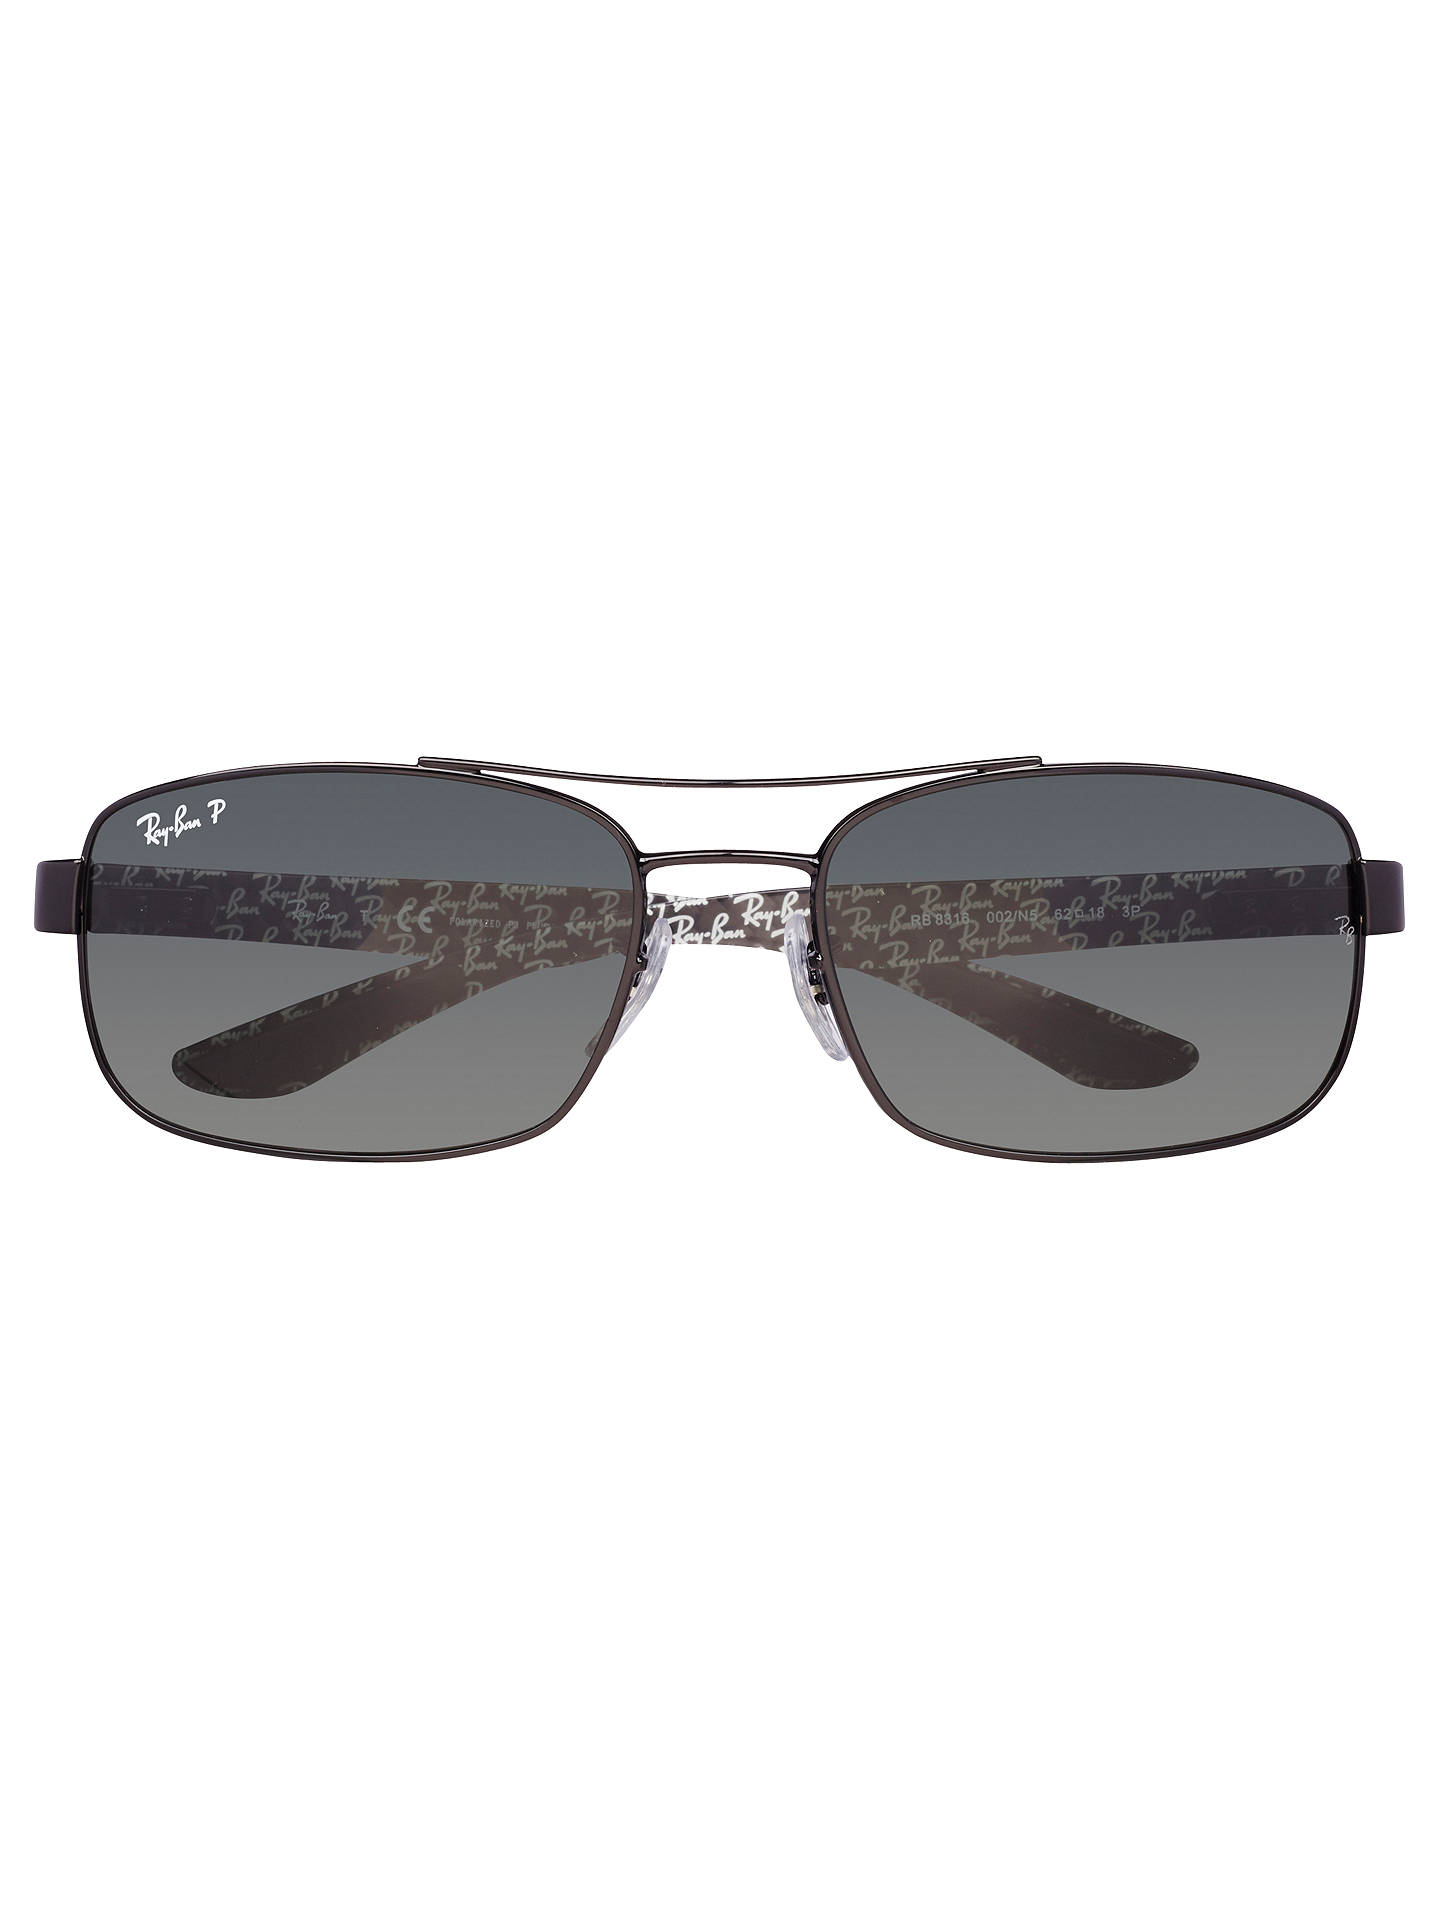 Buy Ray-Ban RB8316 Carbon Fibre Polarised Sunglasses, Black Online at johnlewis.com